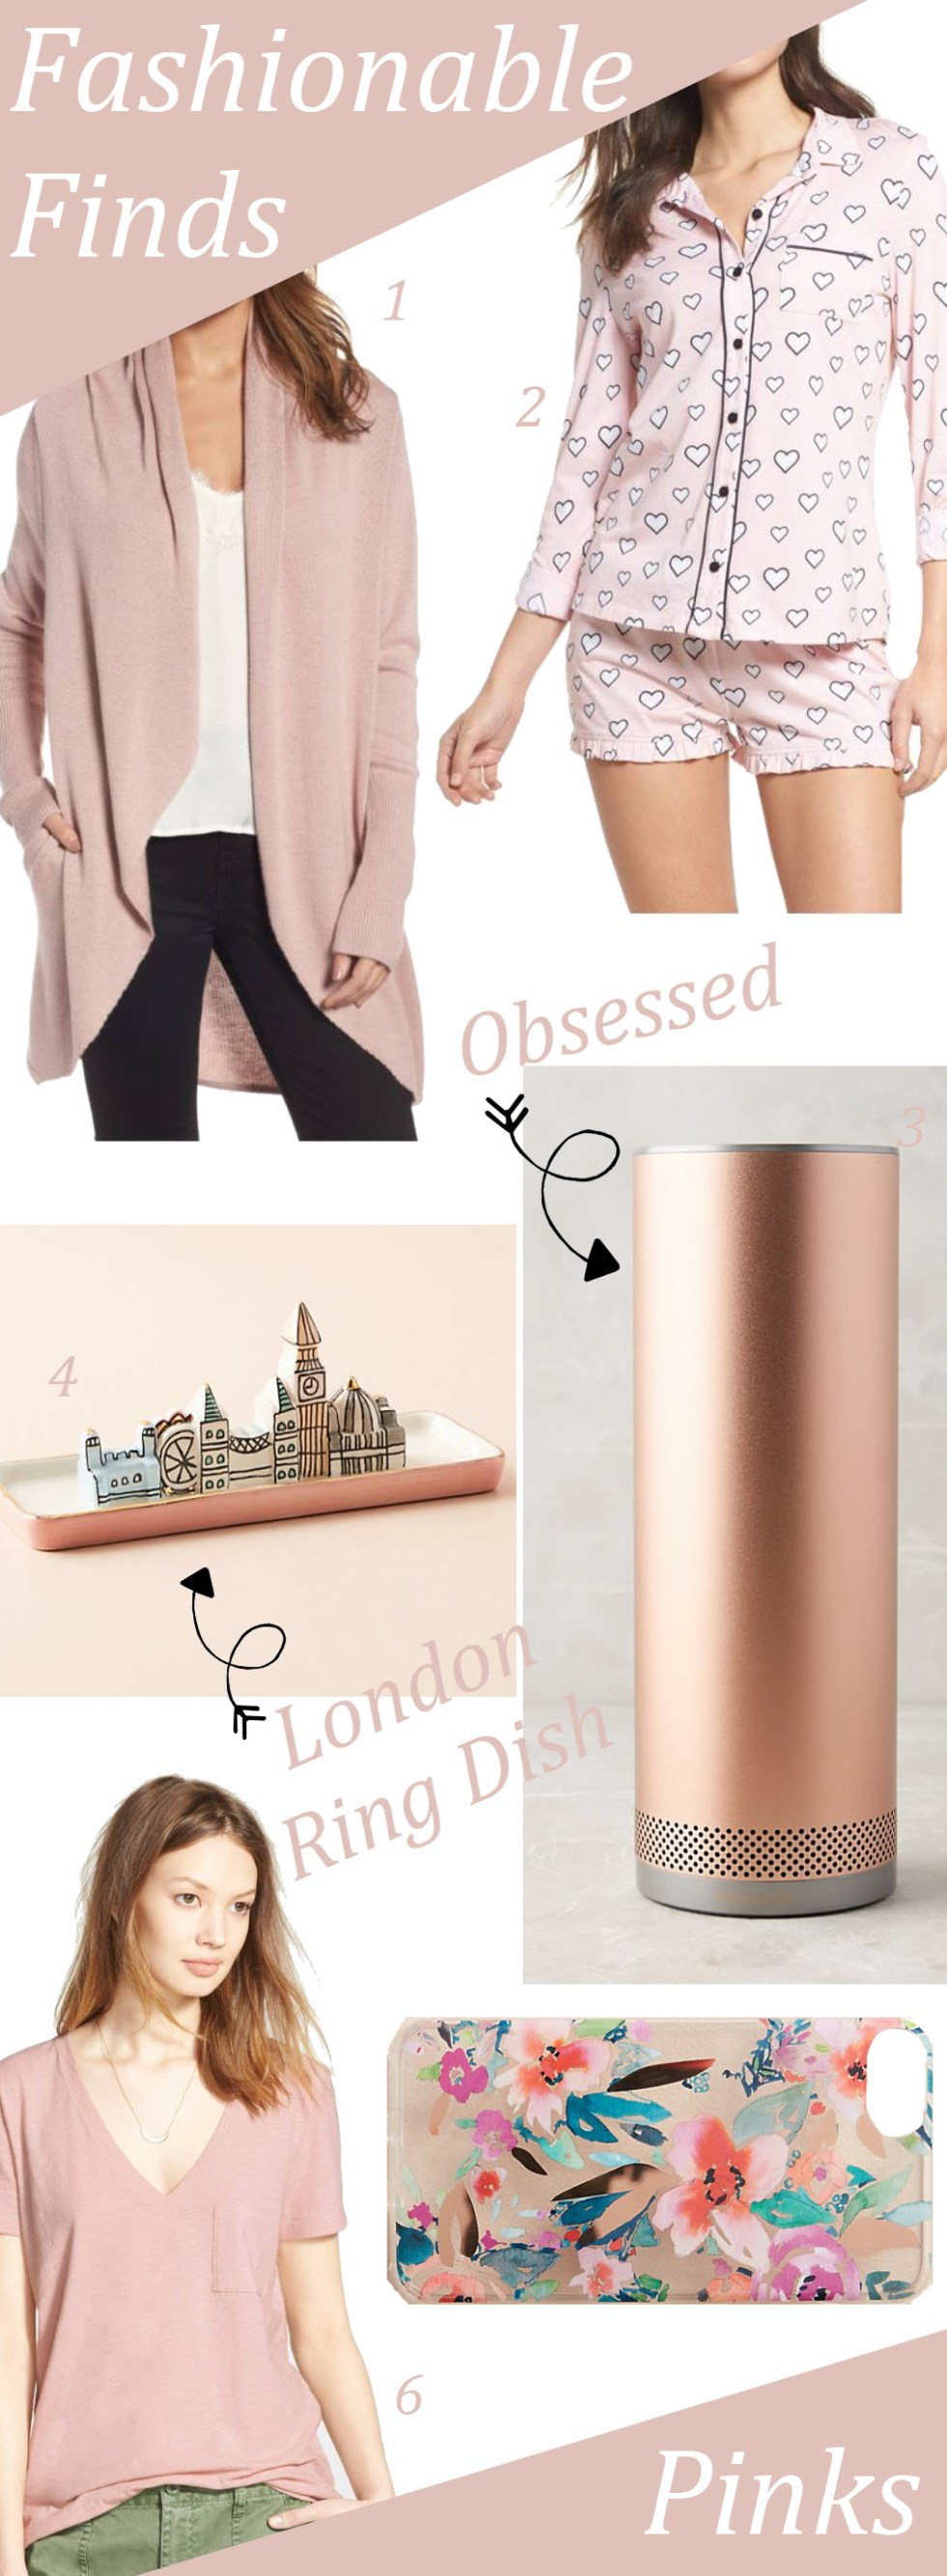 February Fashion Finds for Chic Valentine's Day Fashion for Women #style #fashion #fashionblog #fashionblogger #valentinesday #galentinesday #love #pink #burgundy #springfashion #womensfashion #womenstyle